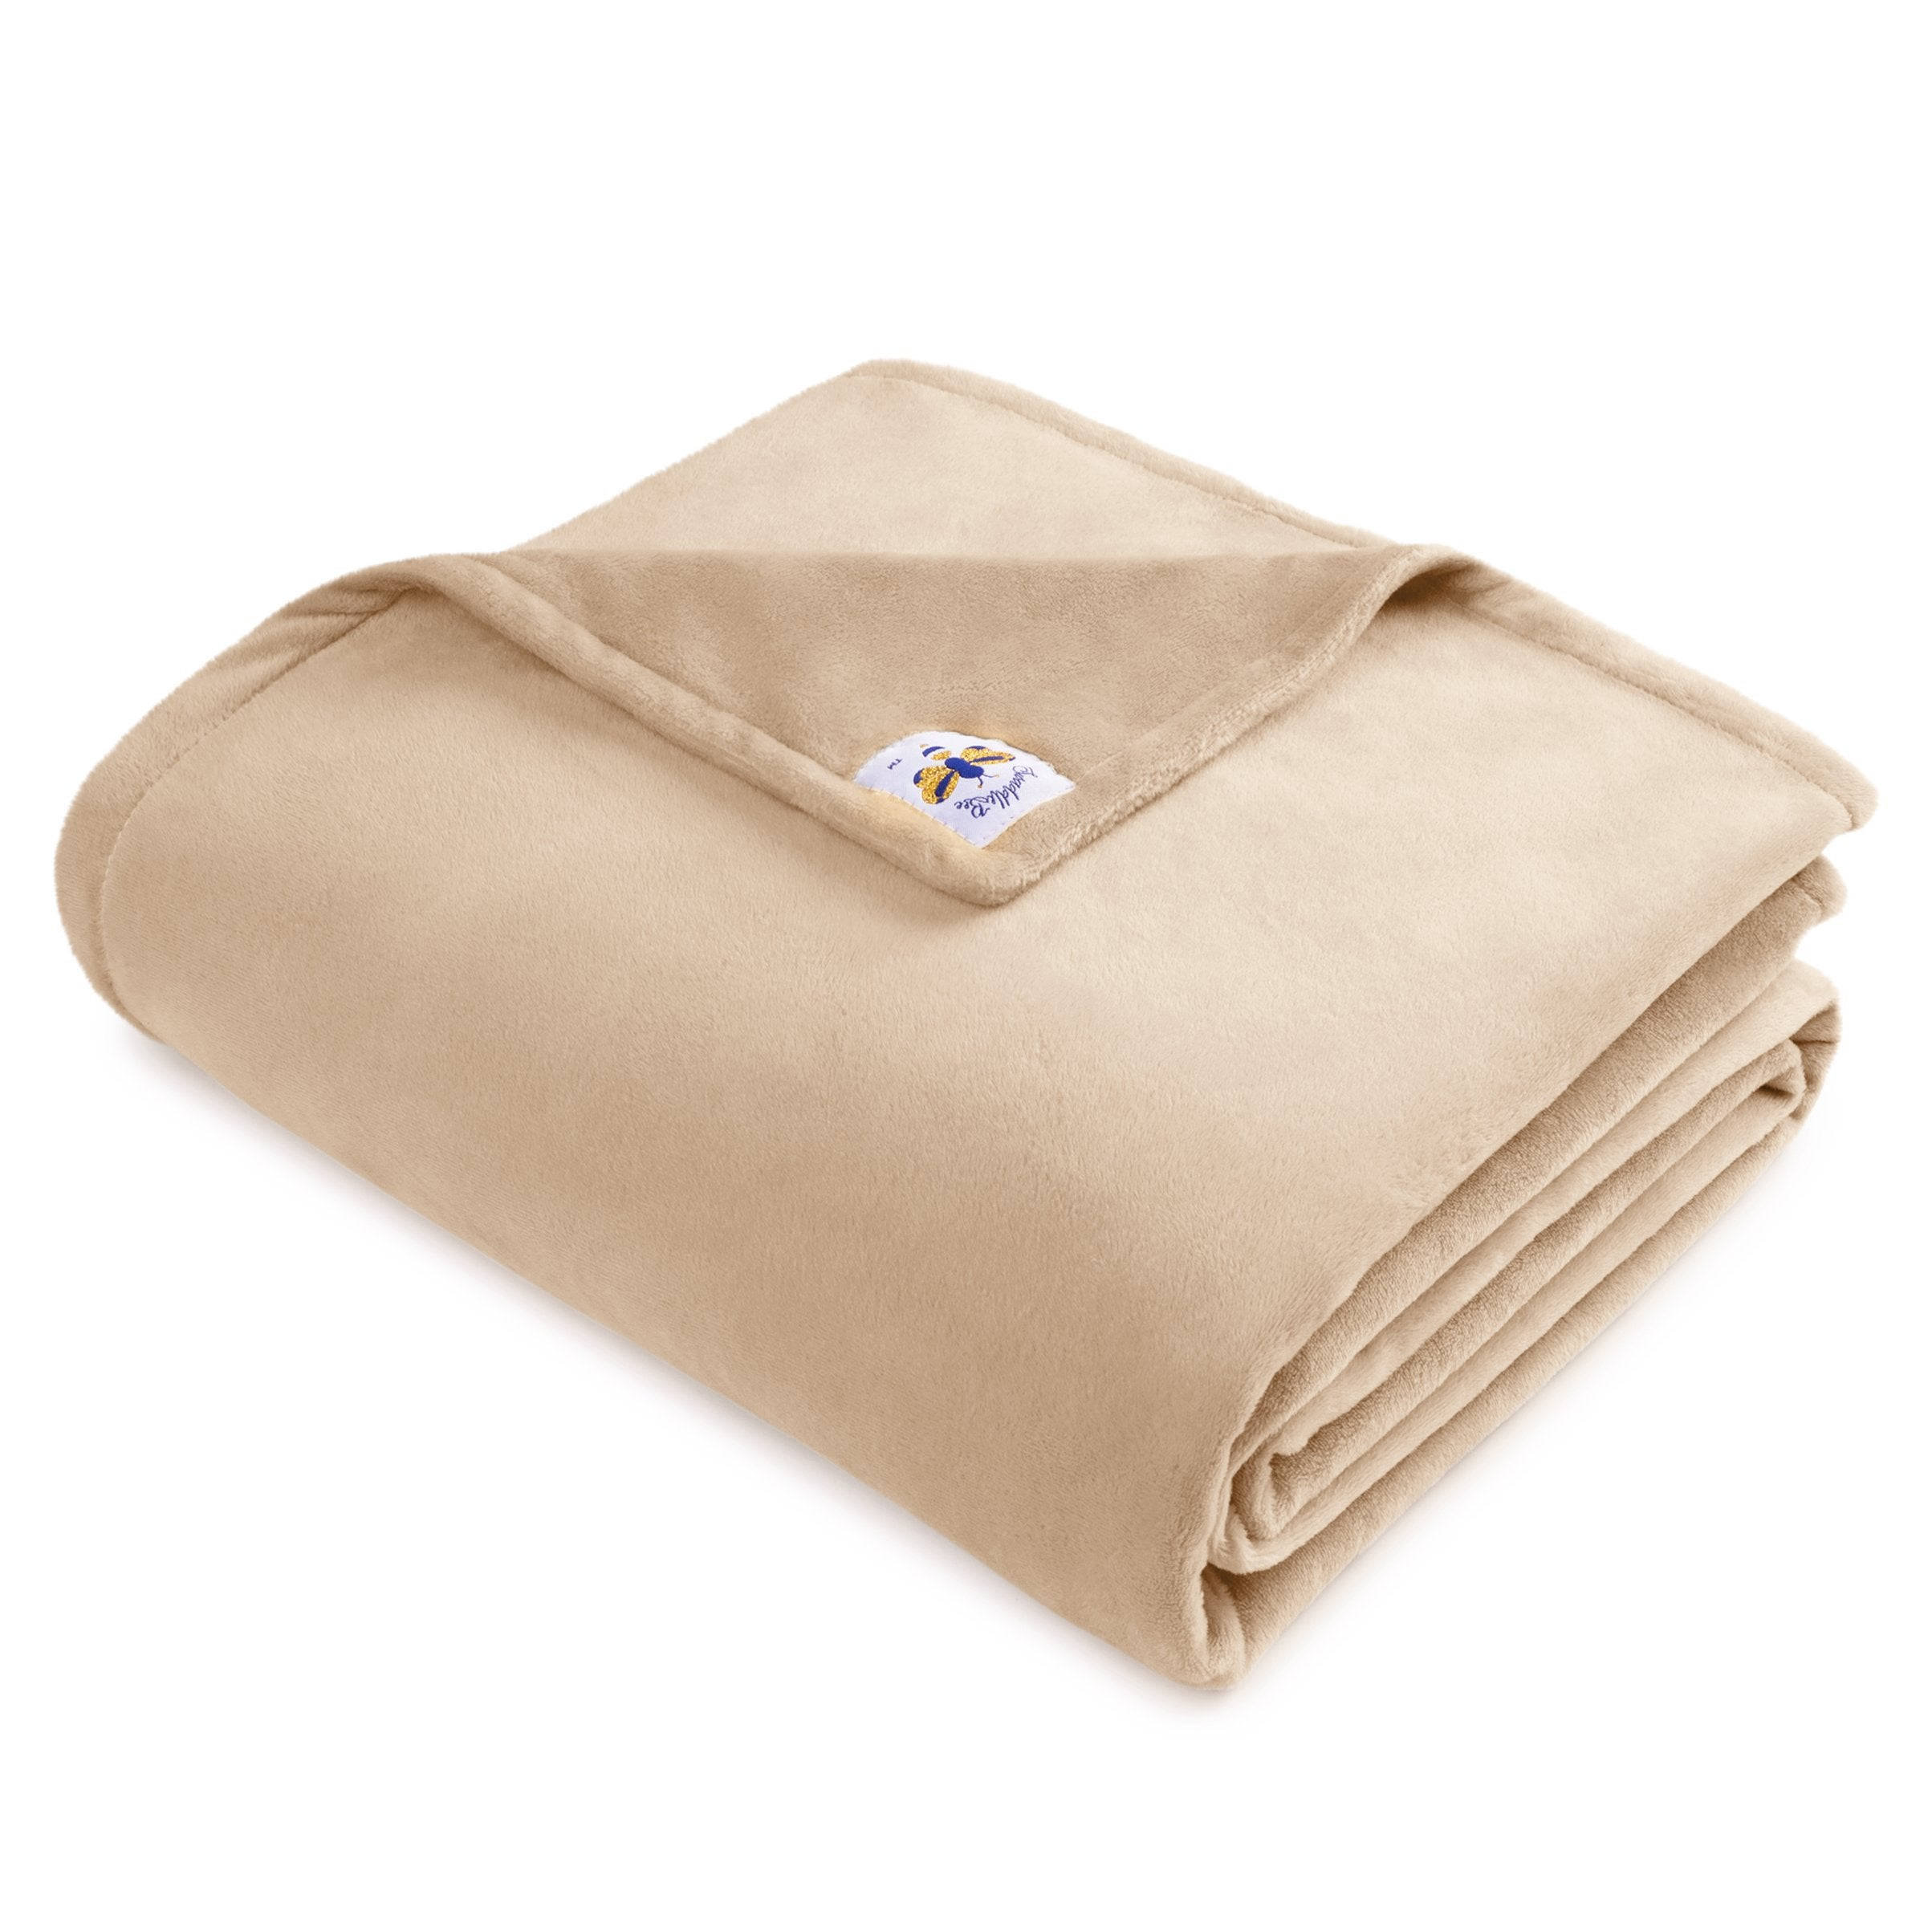 MegaBee Throw Blanket Solid Camel